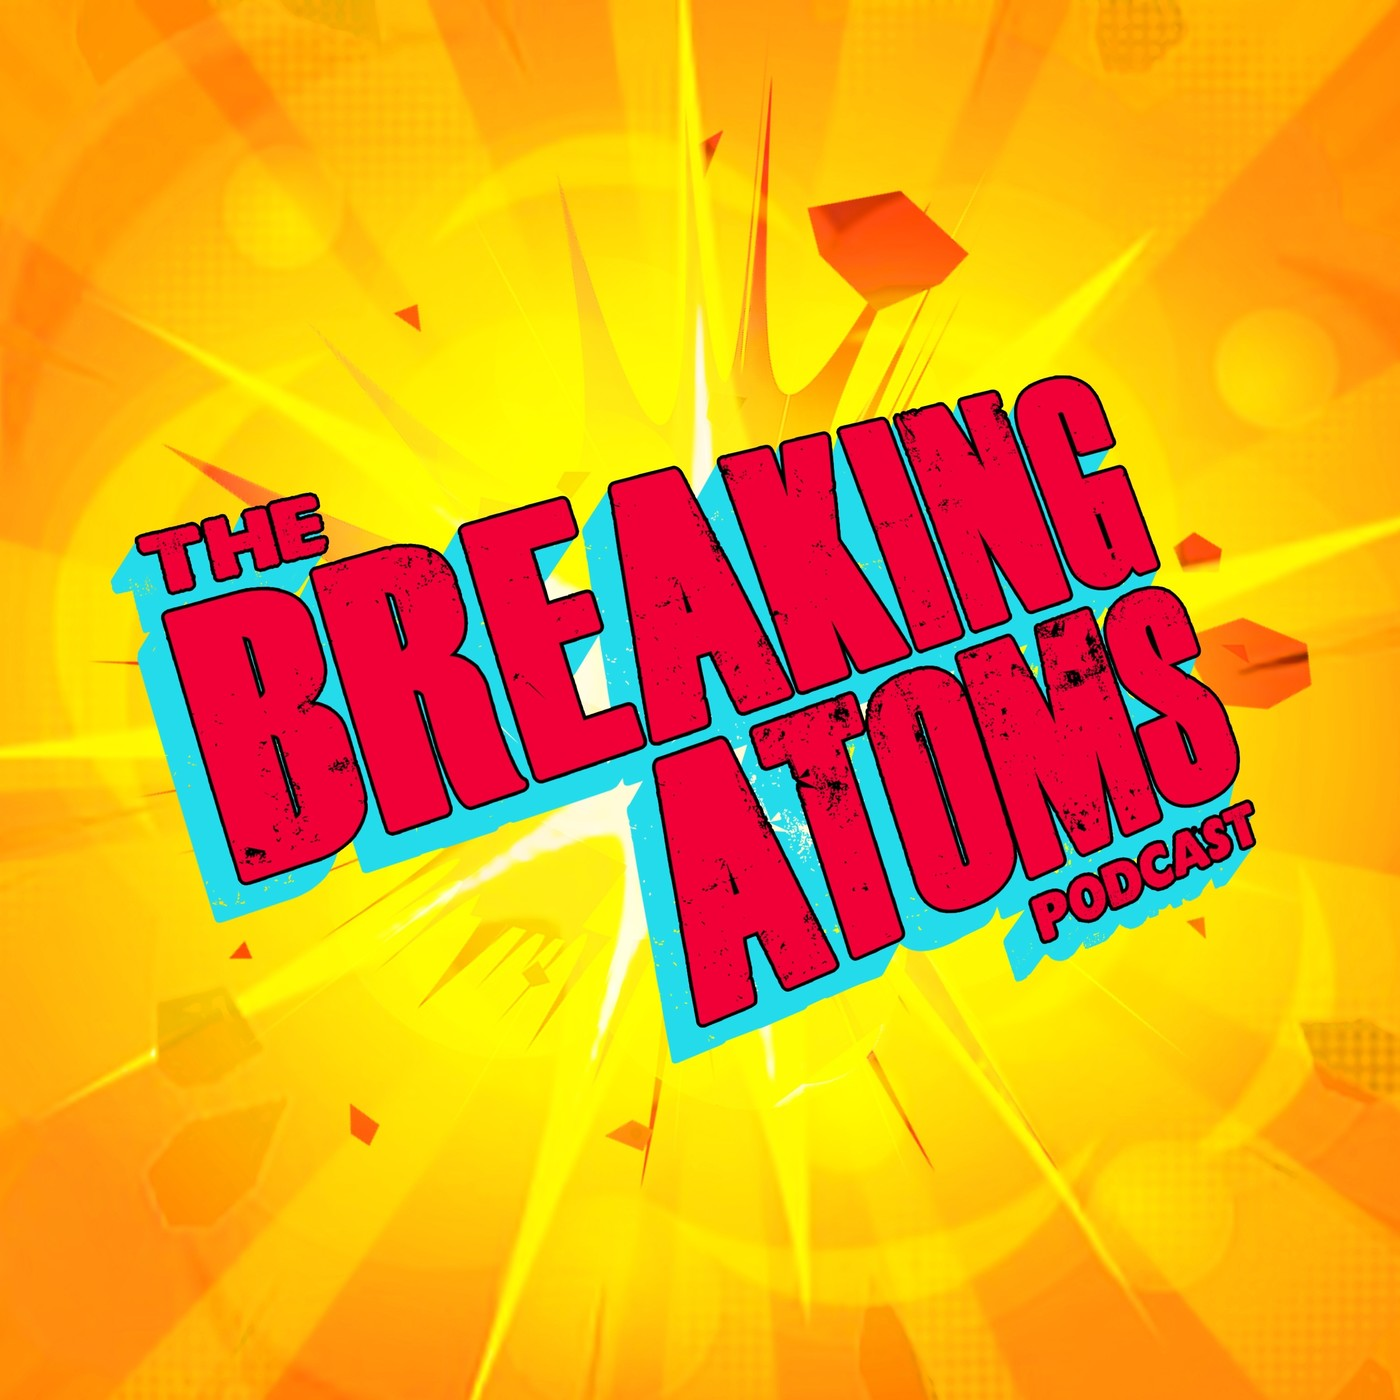 The Breaking Atoms Podcast